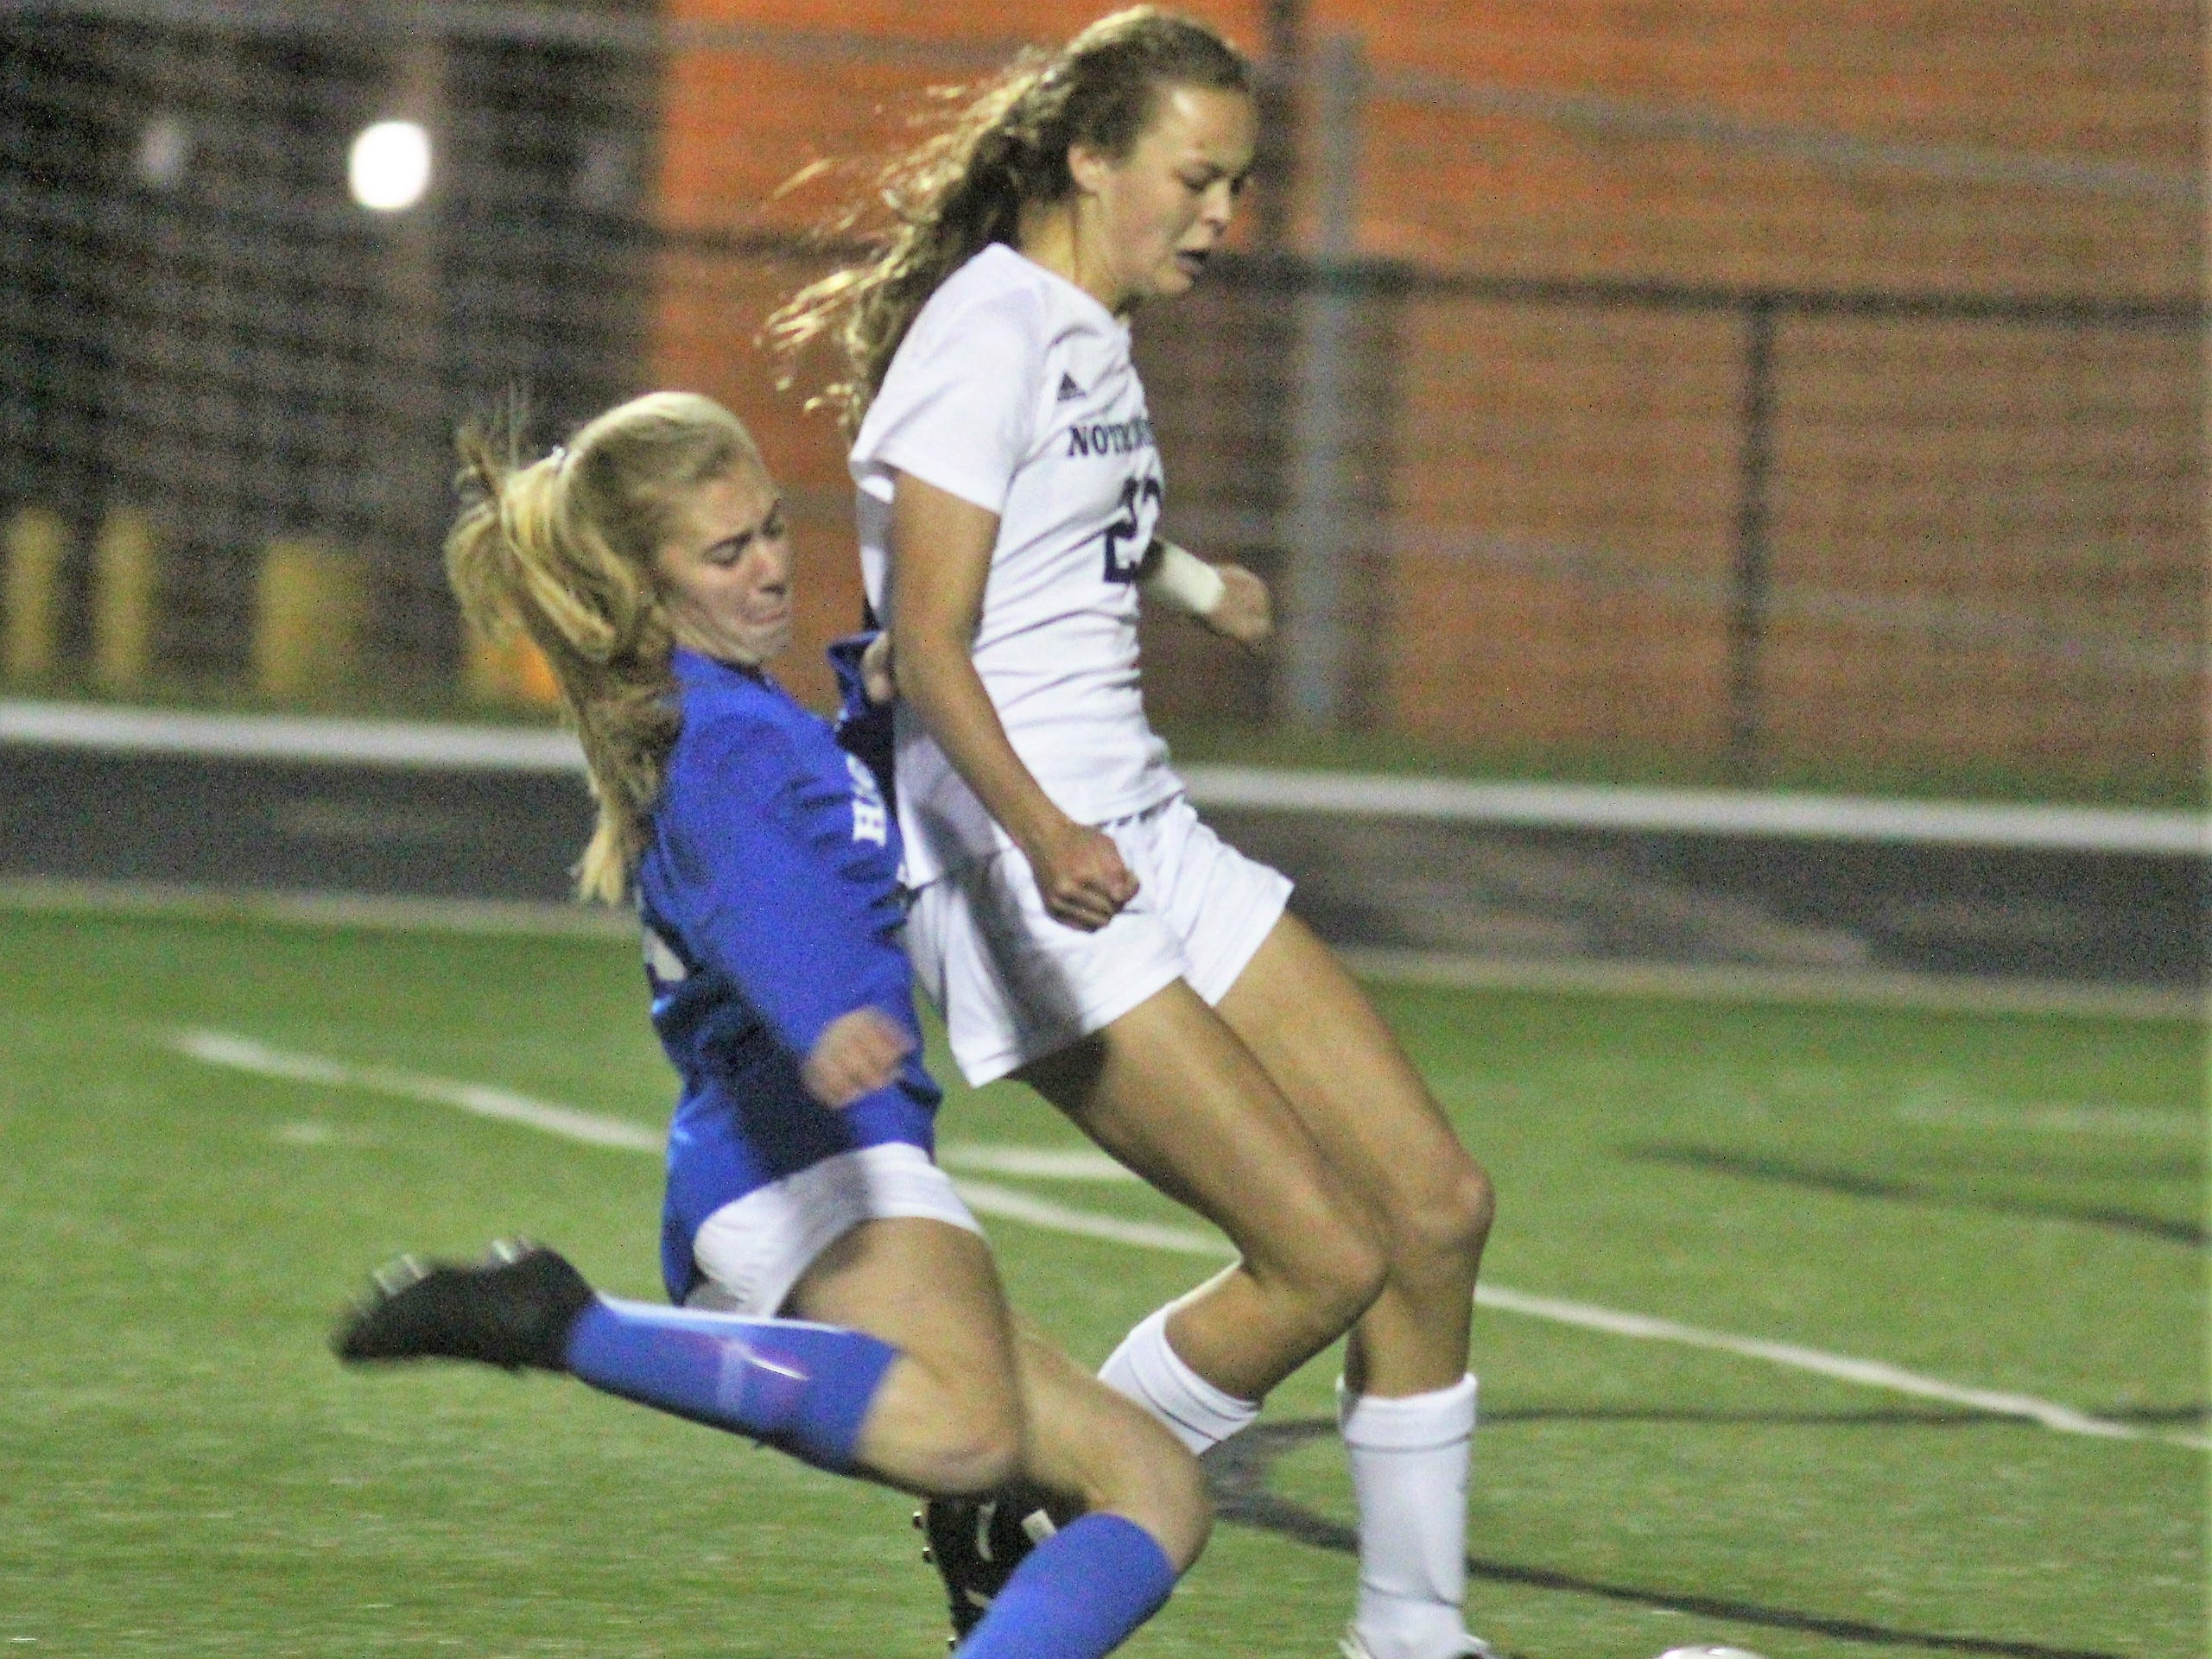 Highlands freshman Chloe Bramble, blue, gets the shot off under heavy pressure from Notre Dame freshman Natalie Bain and scores the only goal of the game from 20 yards out during Highlands' 1-0 win over Notre Dame in the 9th Region girls soccer championship game Oct. 18, 2018 at Ryle High School, Union, Ky.